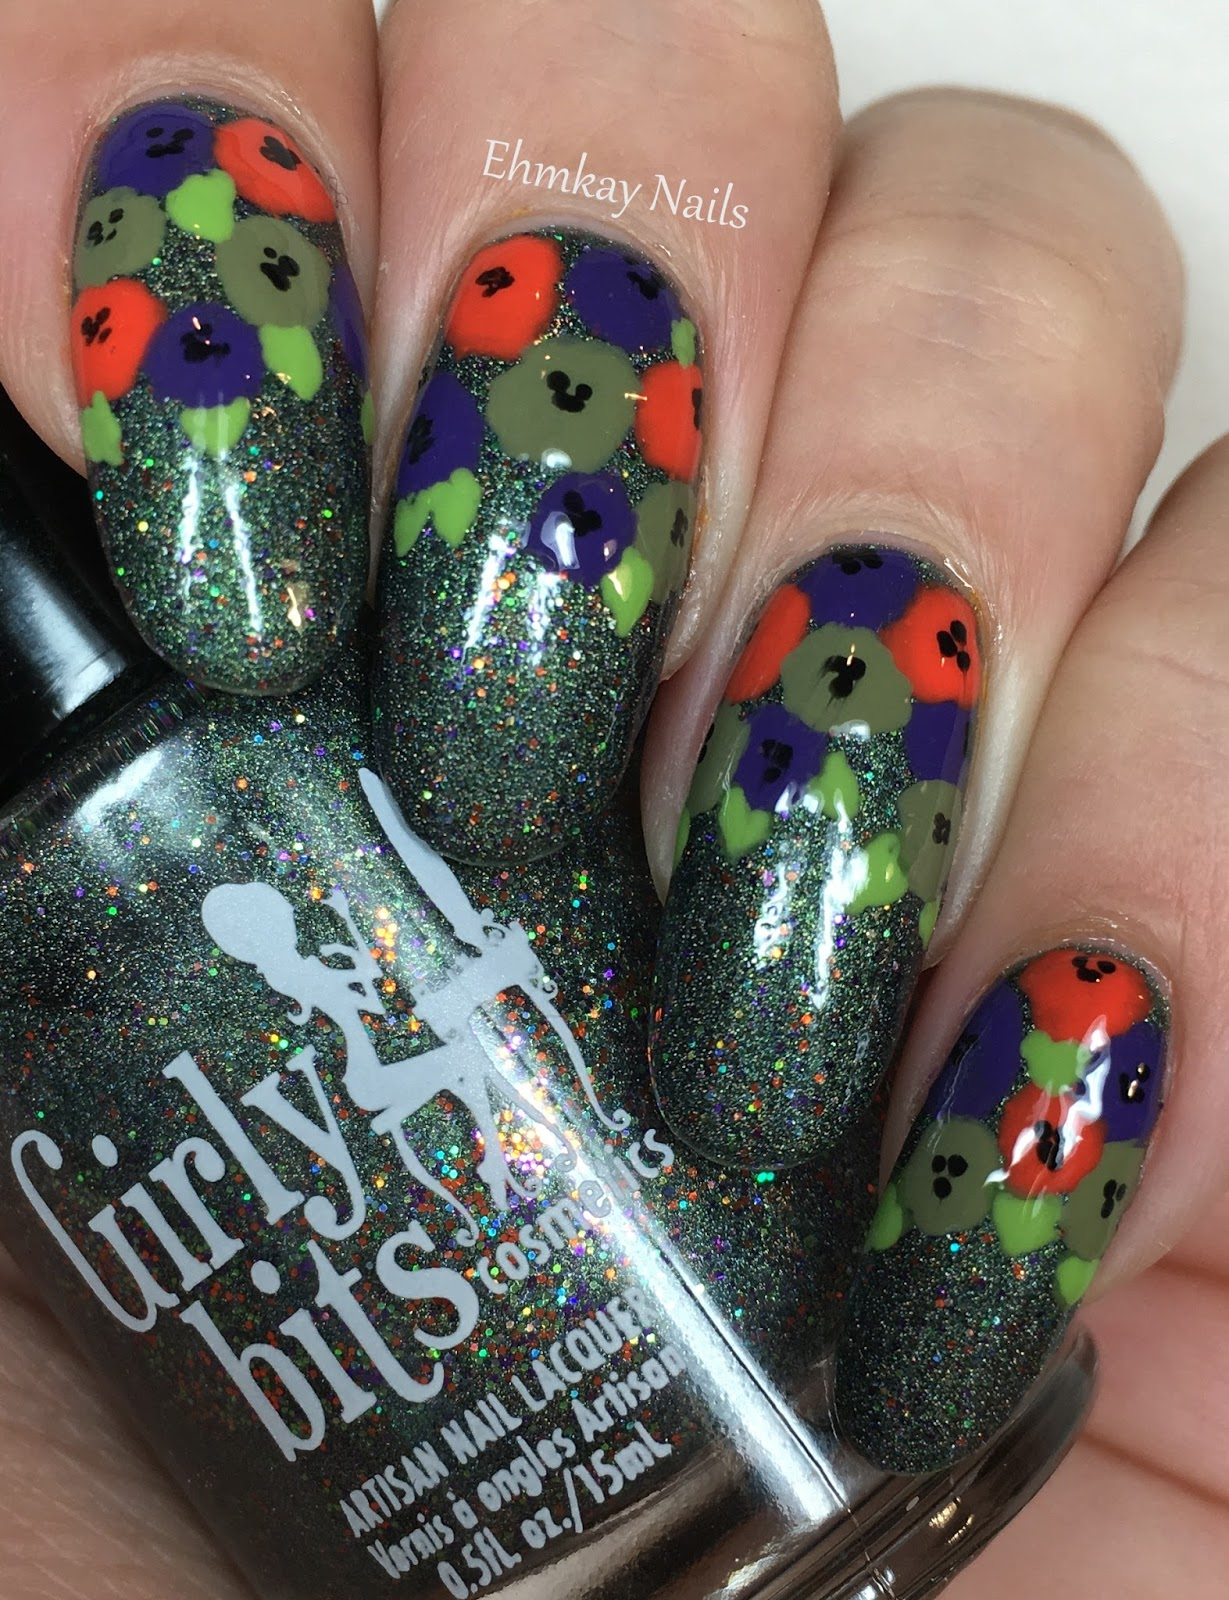 ehmkay nails: Halloween Nail Art: Girly Bits Abracapocus ...